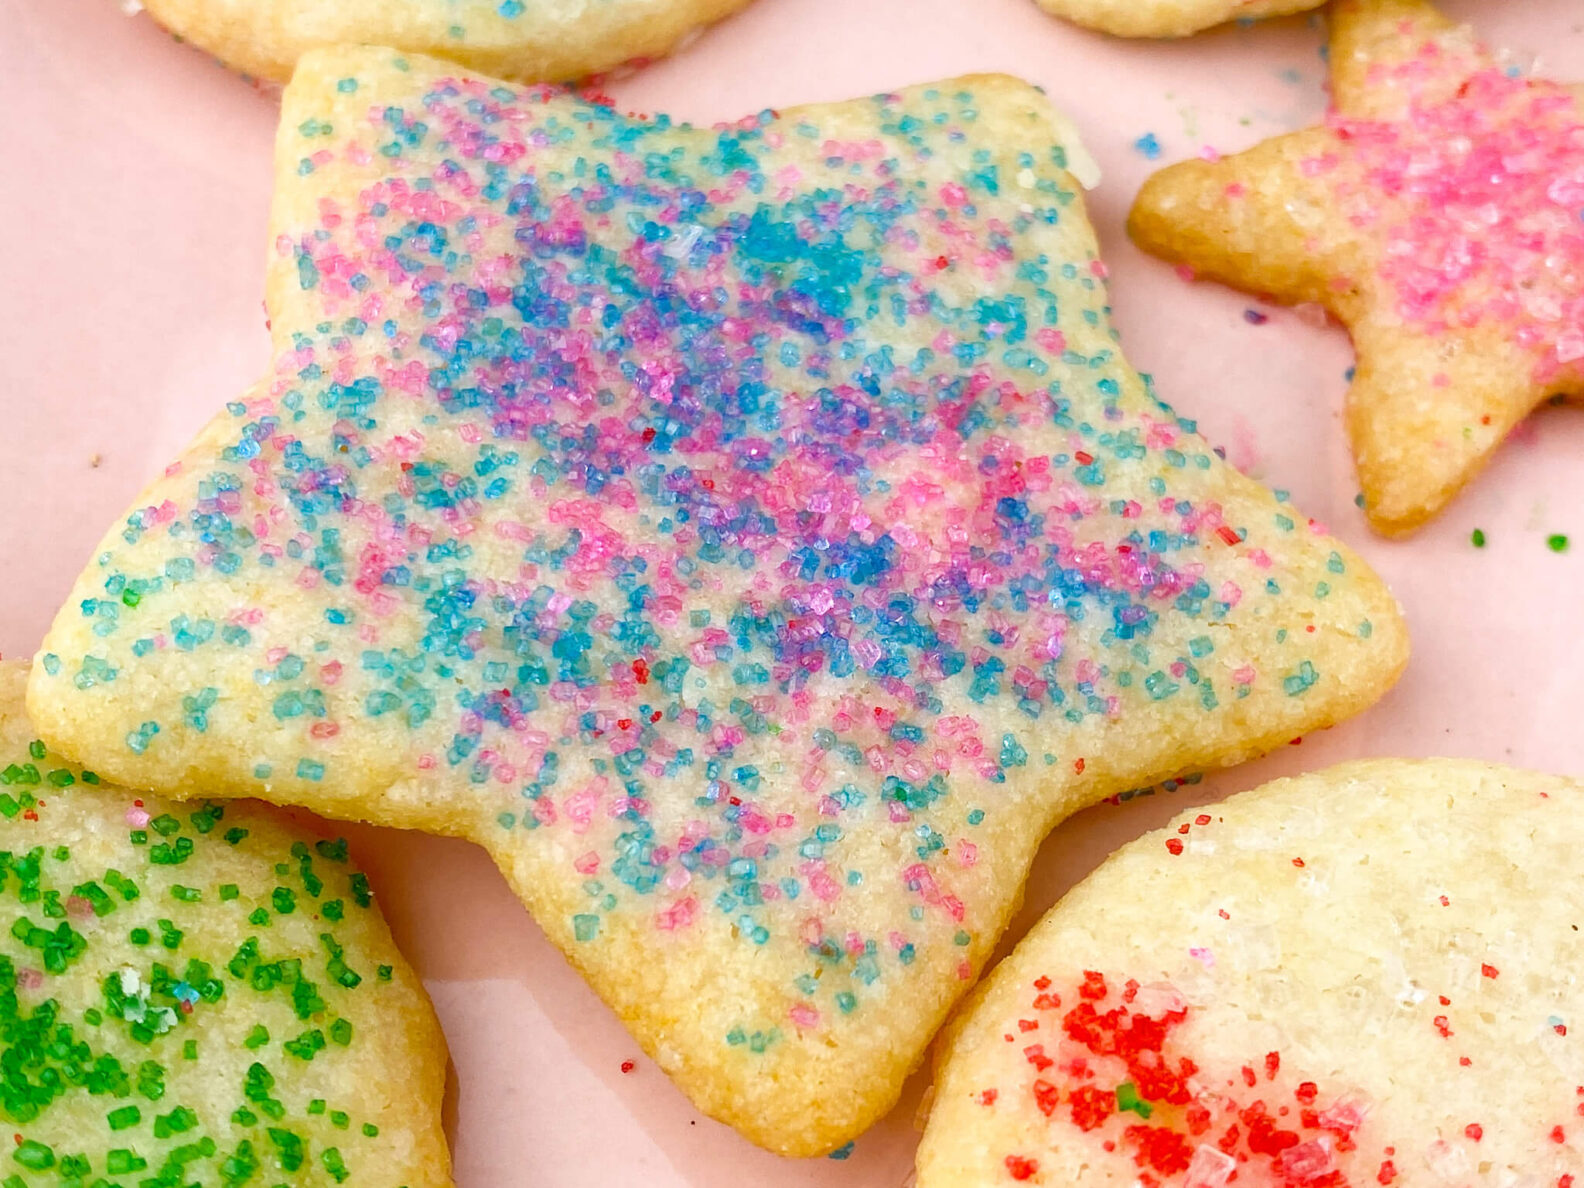 Kate's Safe and Sweet - Rolled Sugar Cookies Star